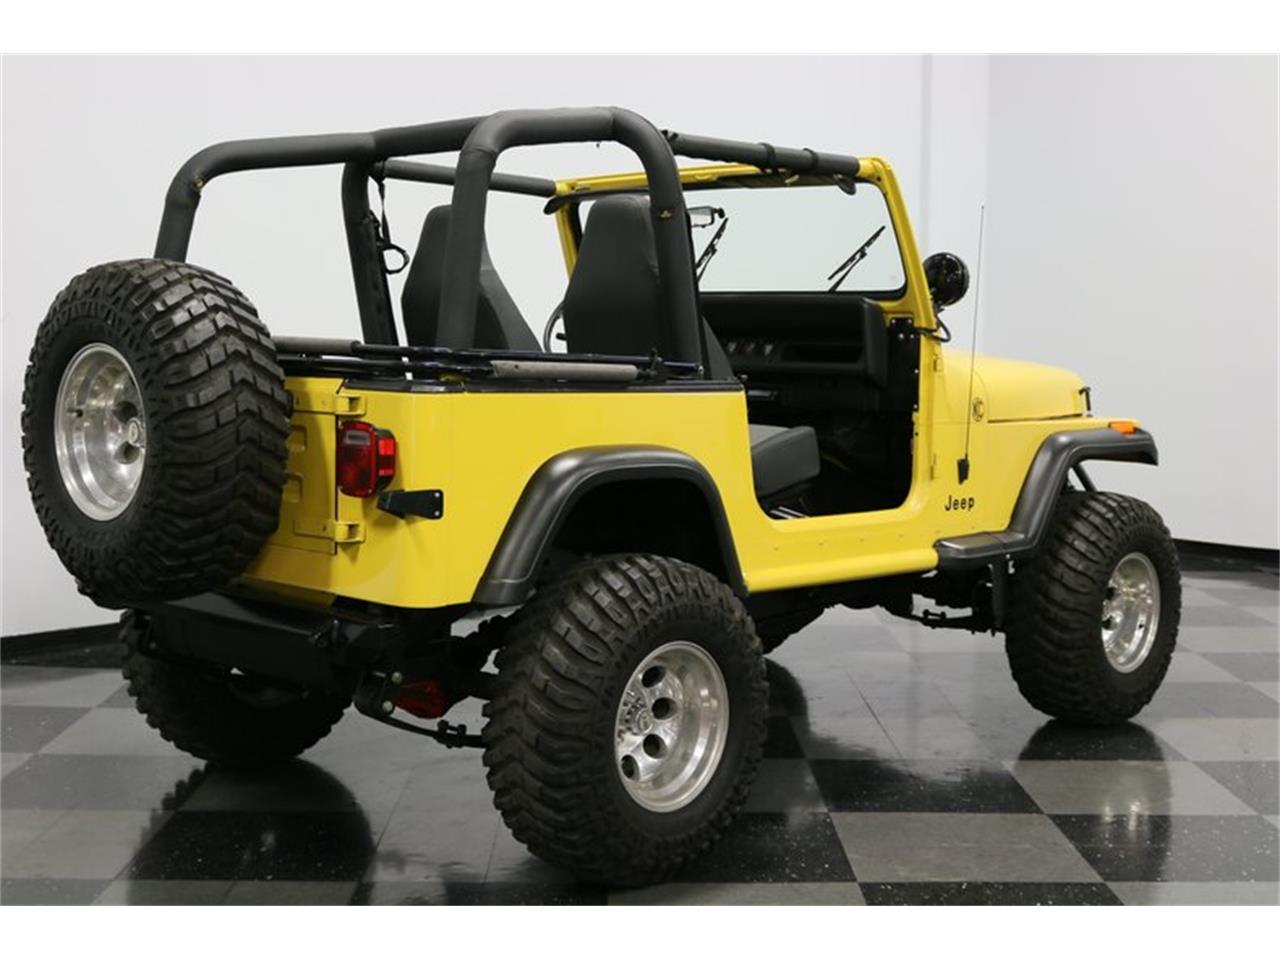 Large Picture of 1993 Jeep Wrangler located in Texas - $25,995.00 Offered by Streetside Classics - Dallas / Fort Worth - P701